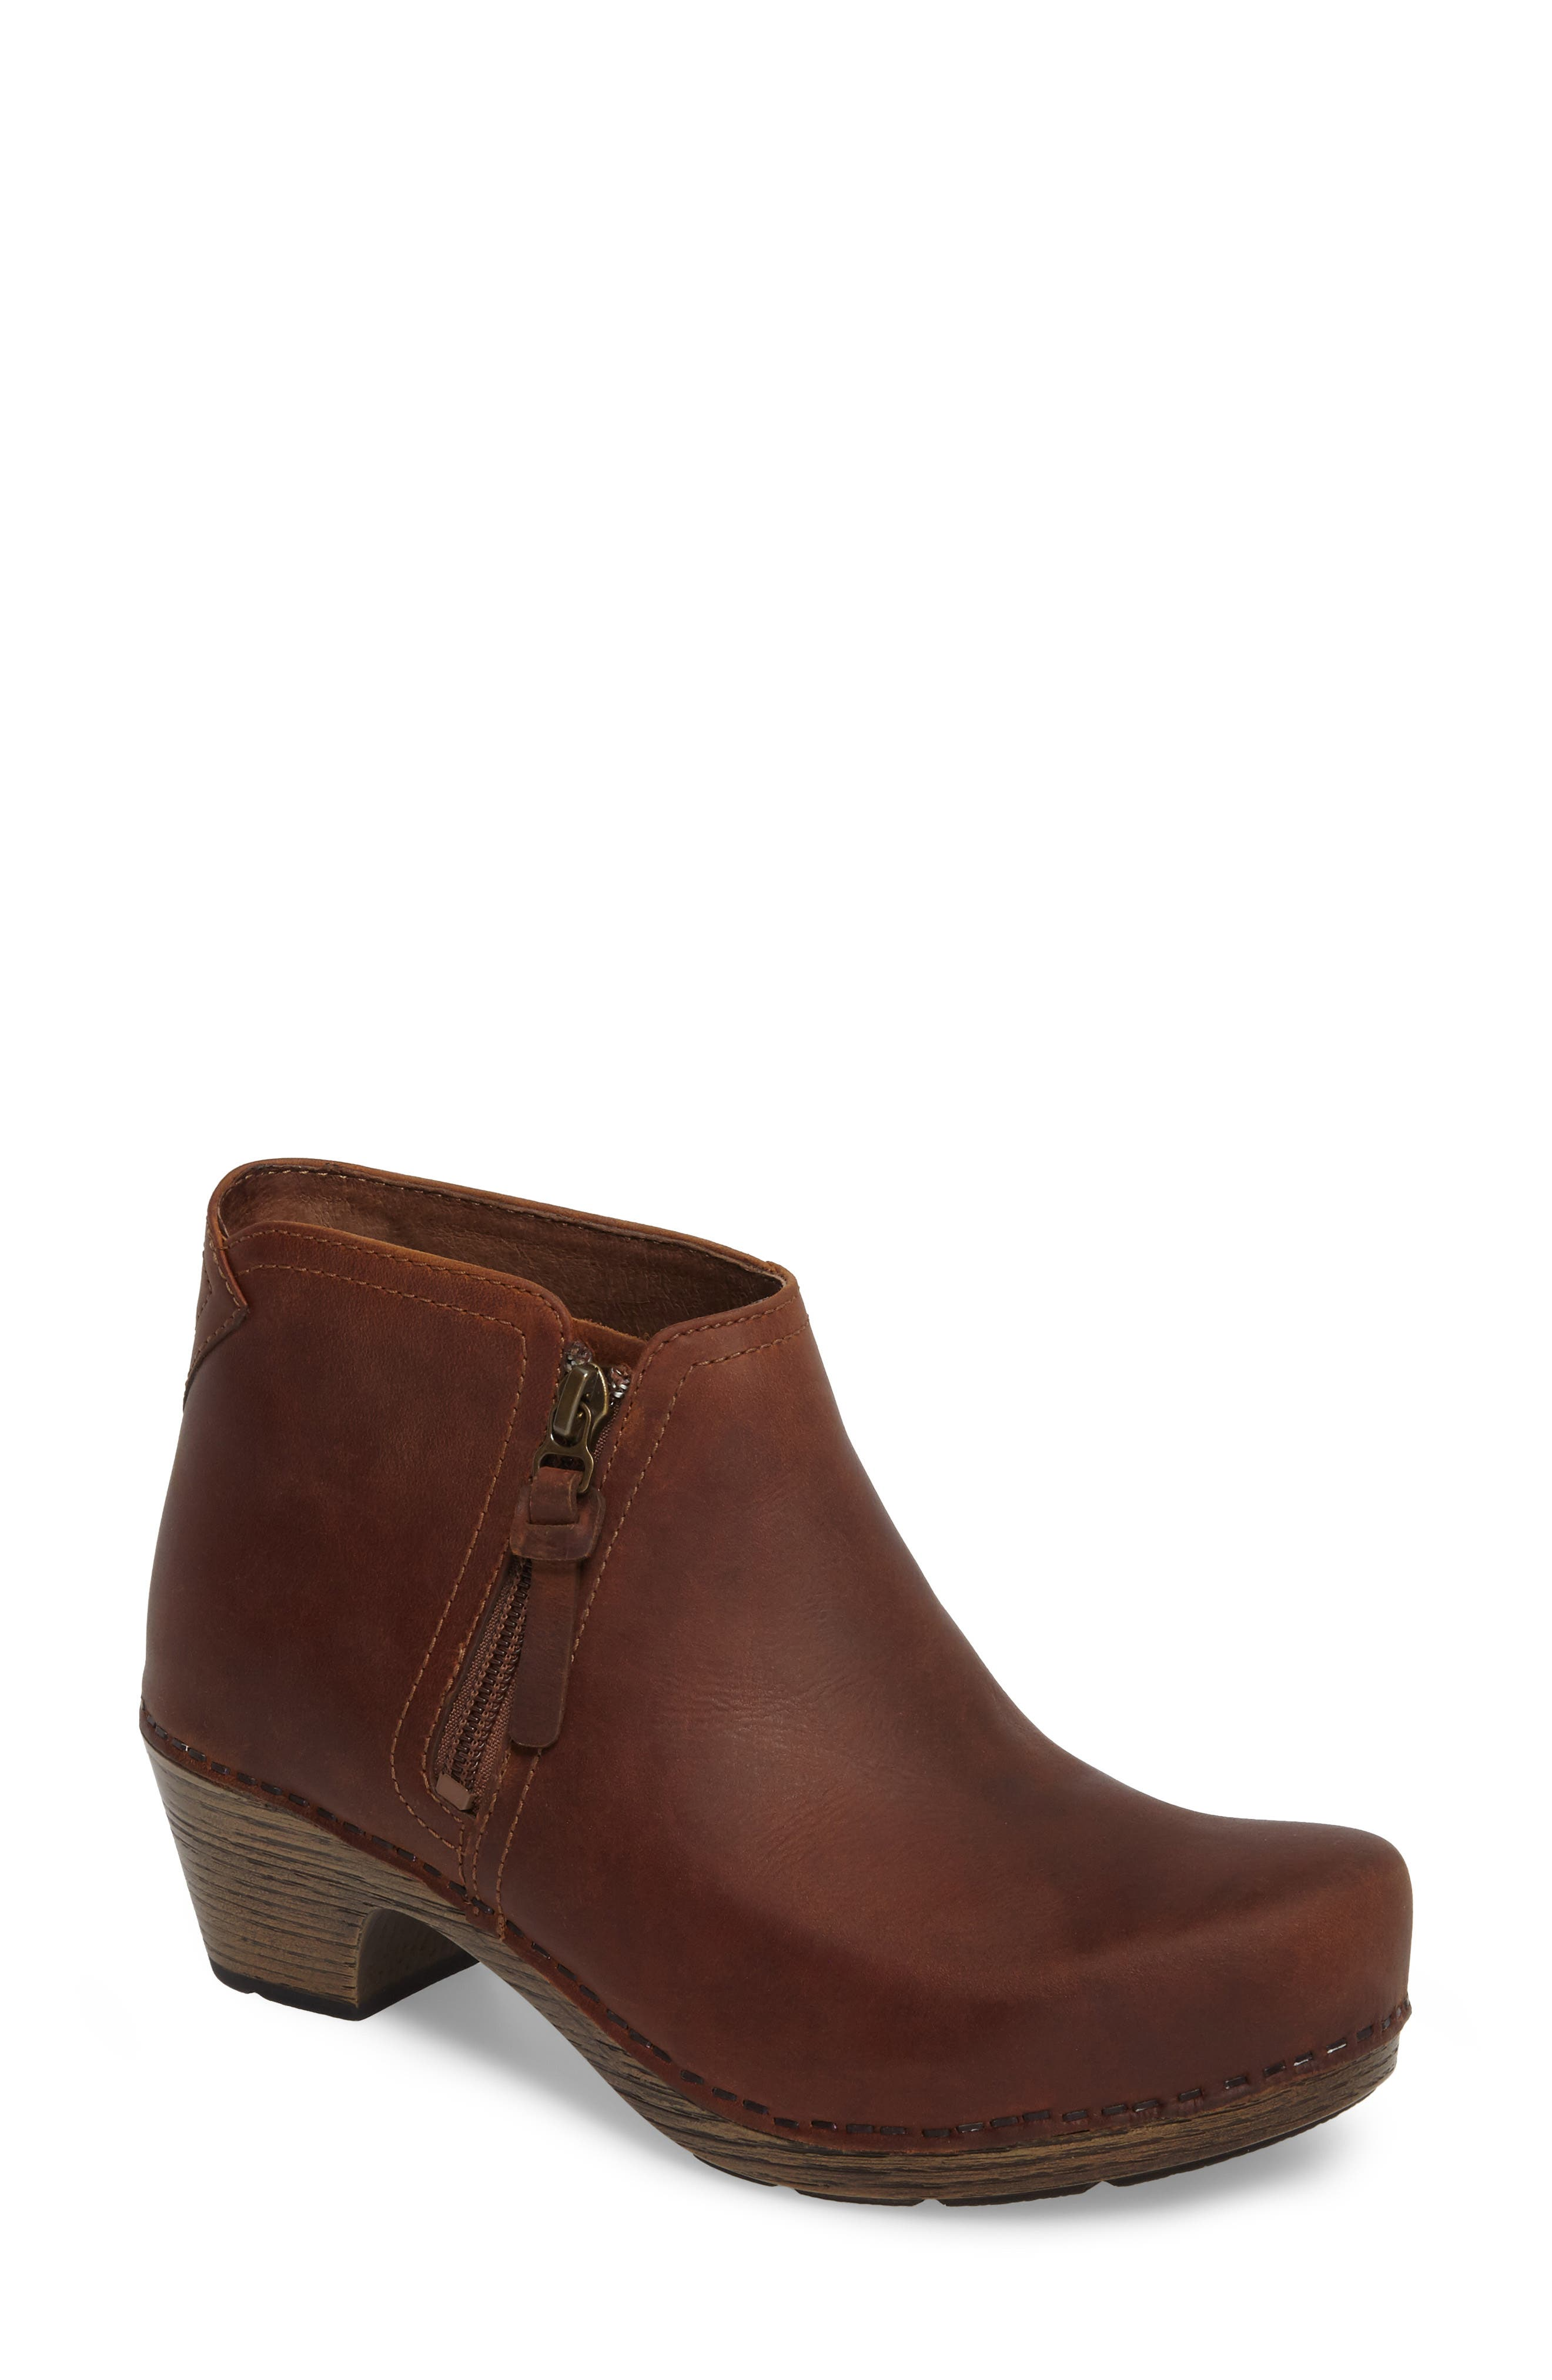 Max Bootie,                         Main,                         color, Saddle Leather